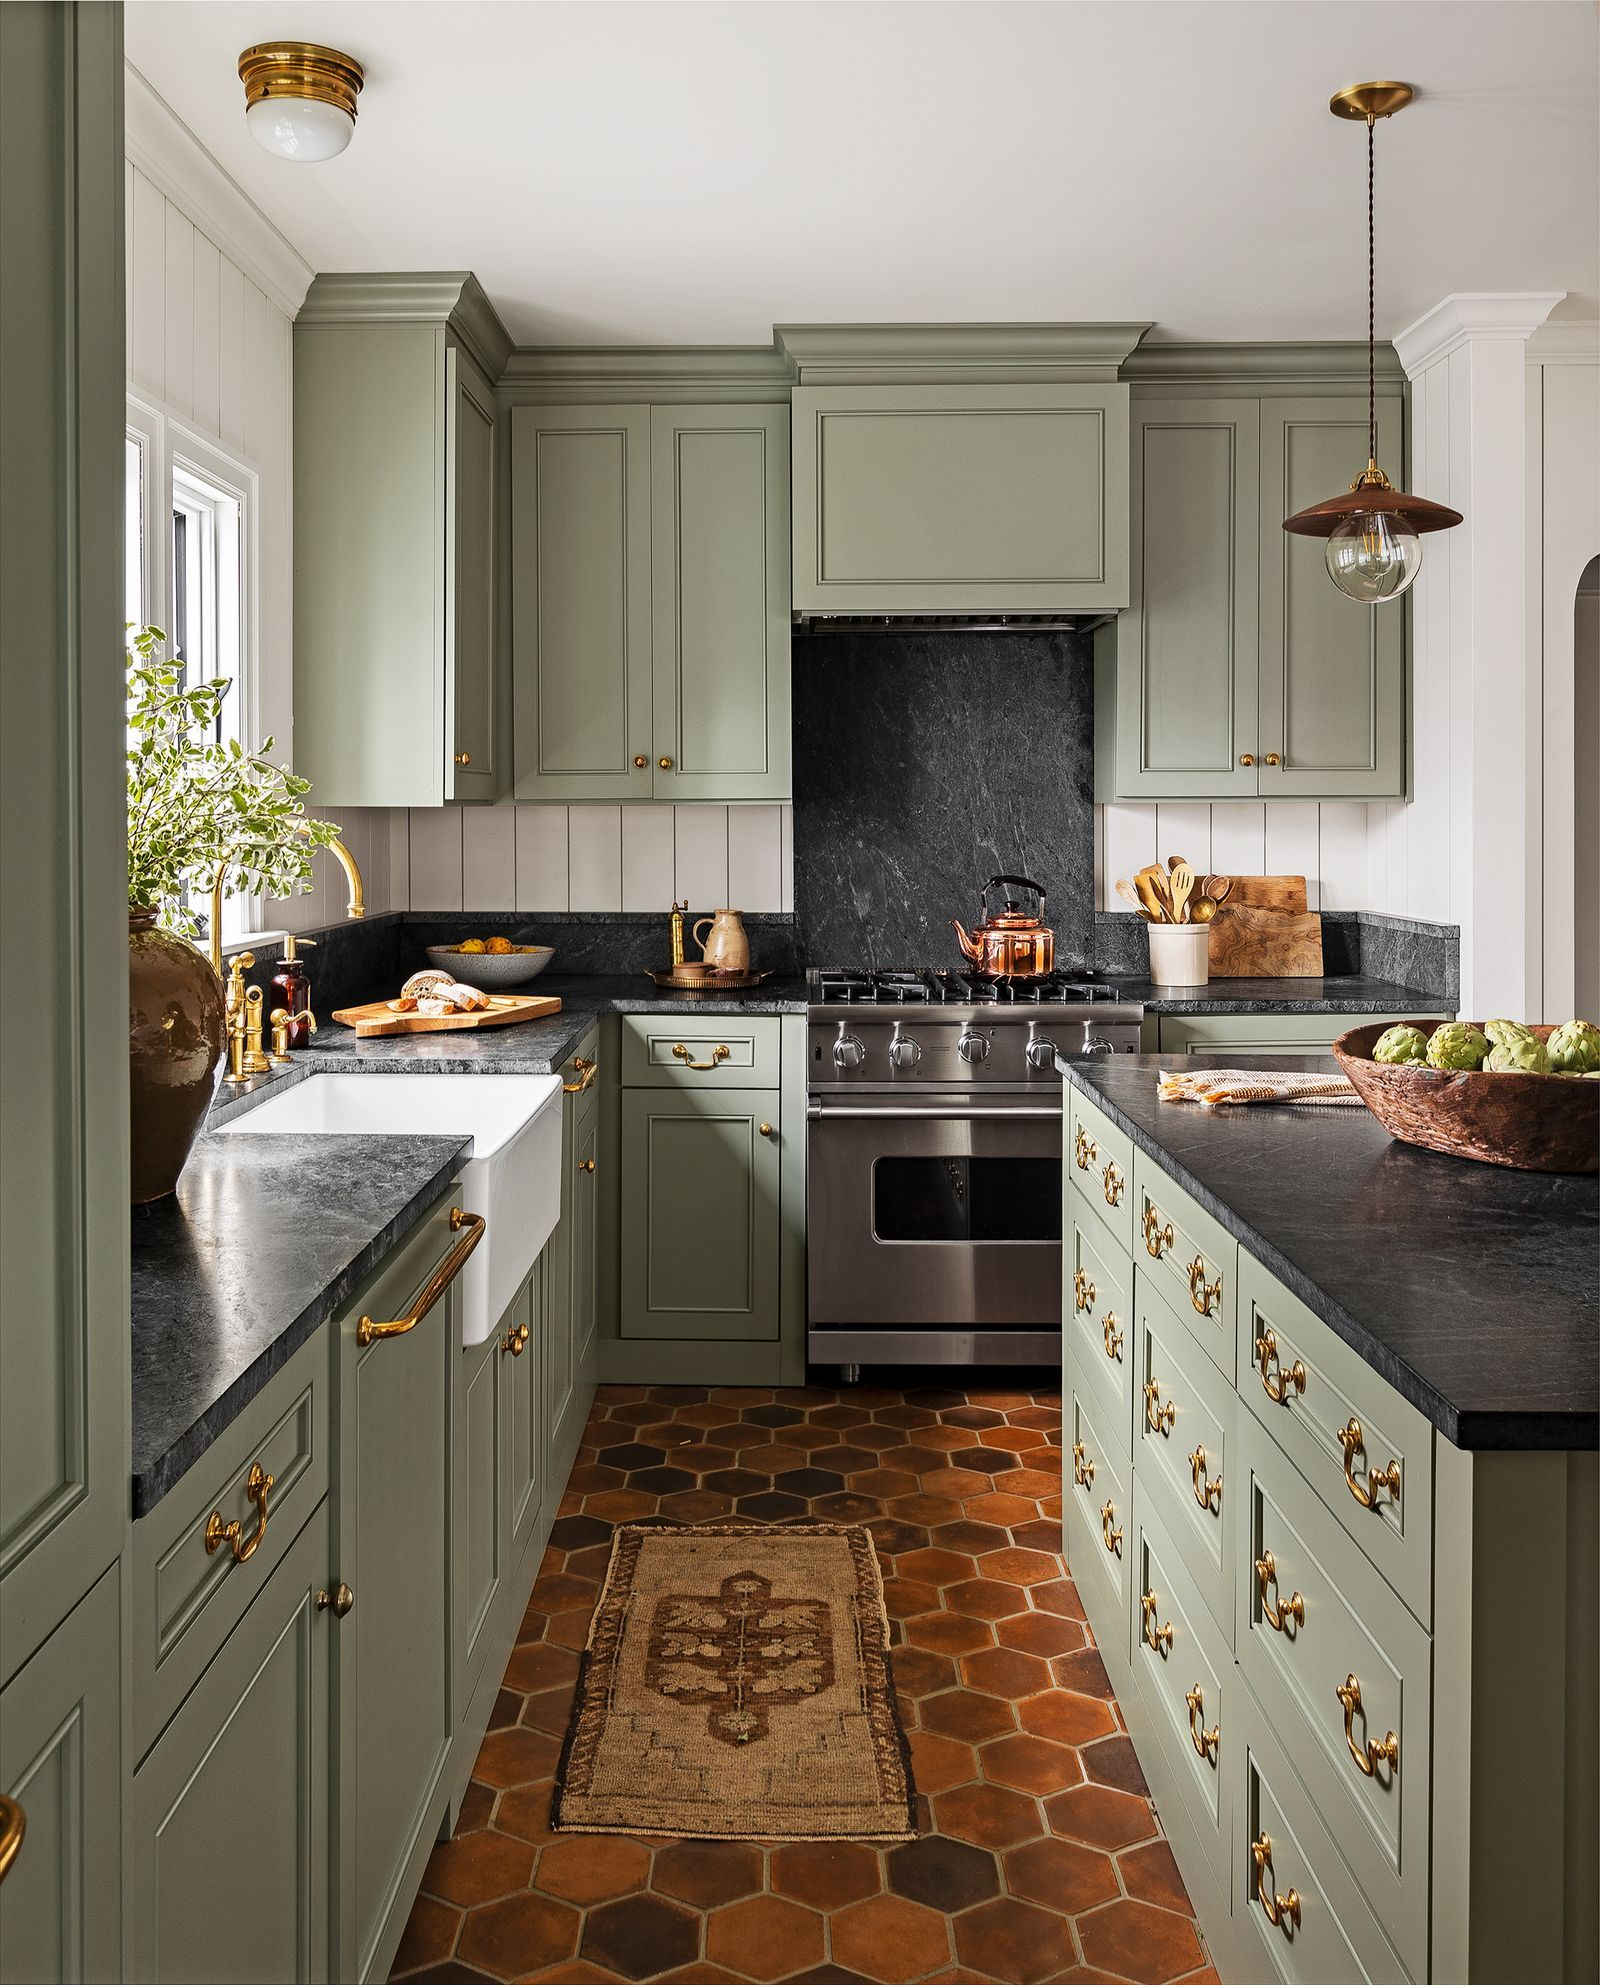 Go Green With These Beautiful Kitchen Cabinet Colors In 2020 With